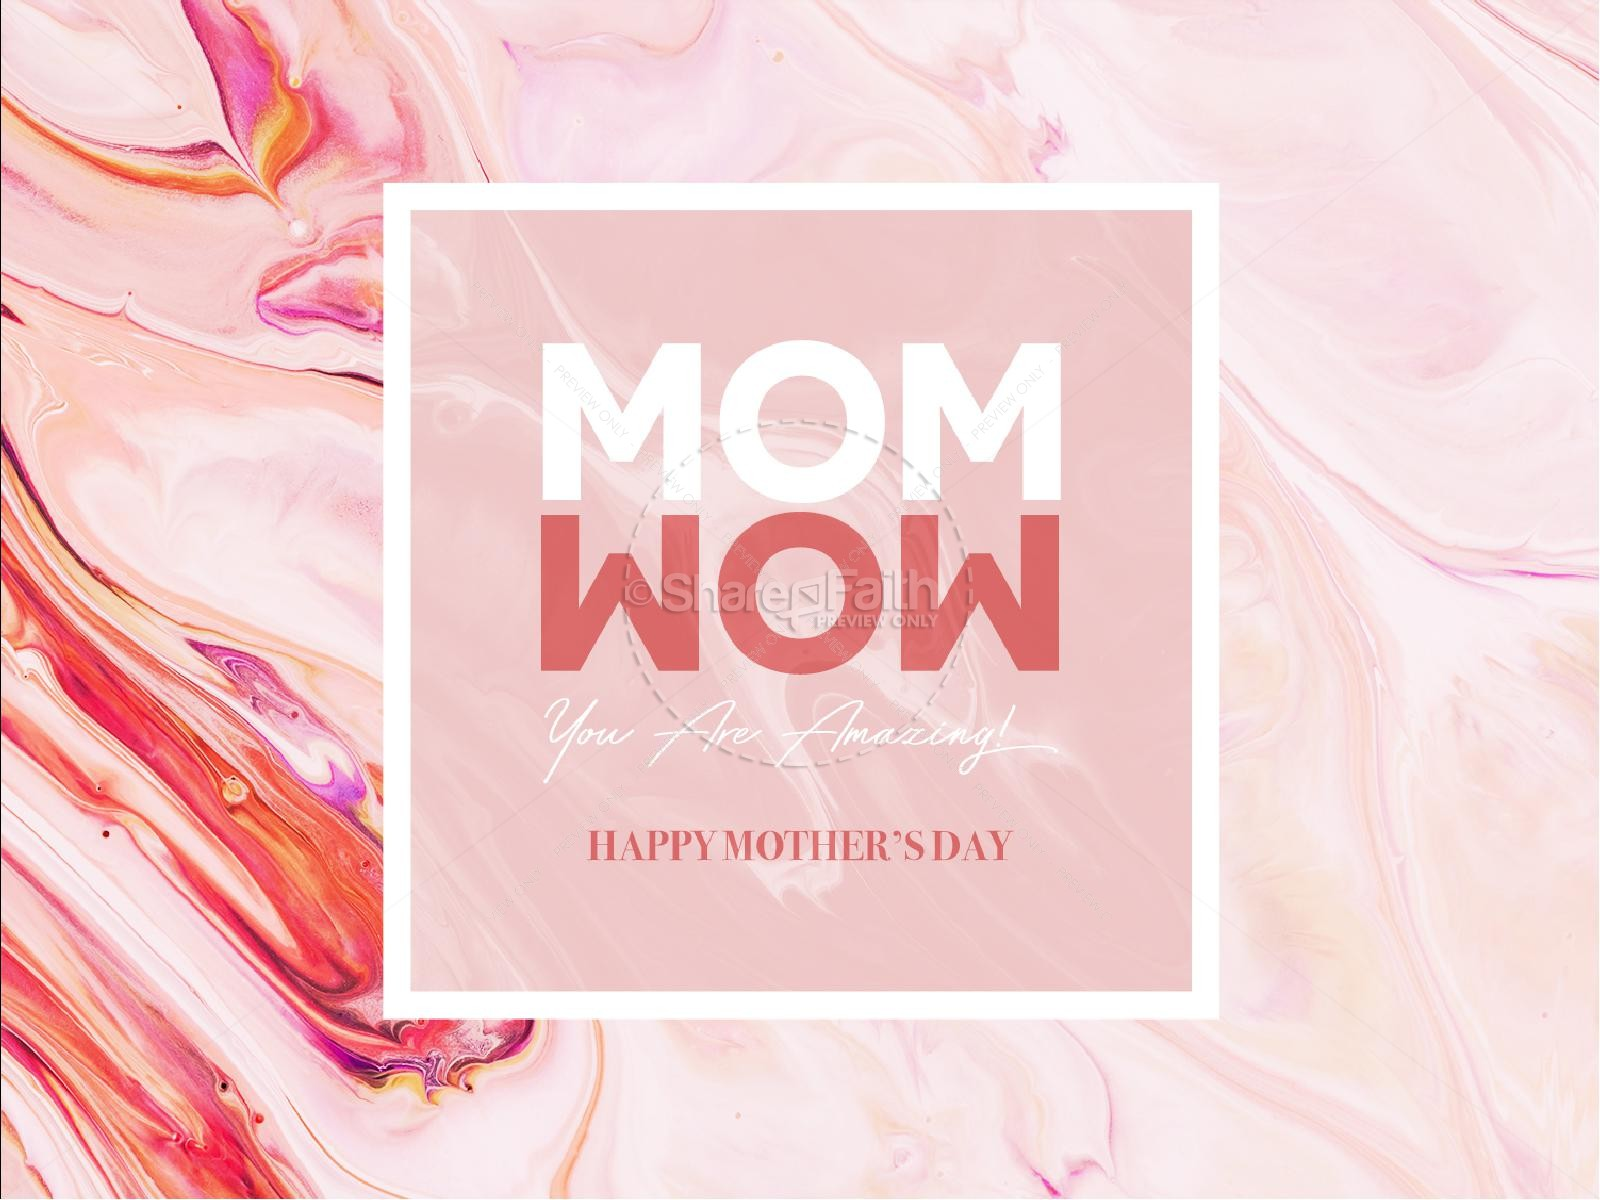 Mom Wow Mother's Day Service Graphic